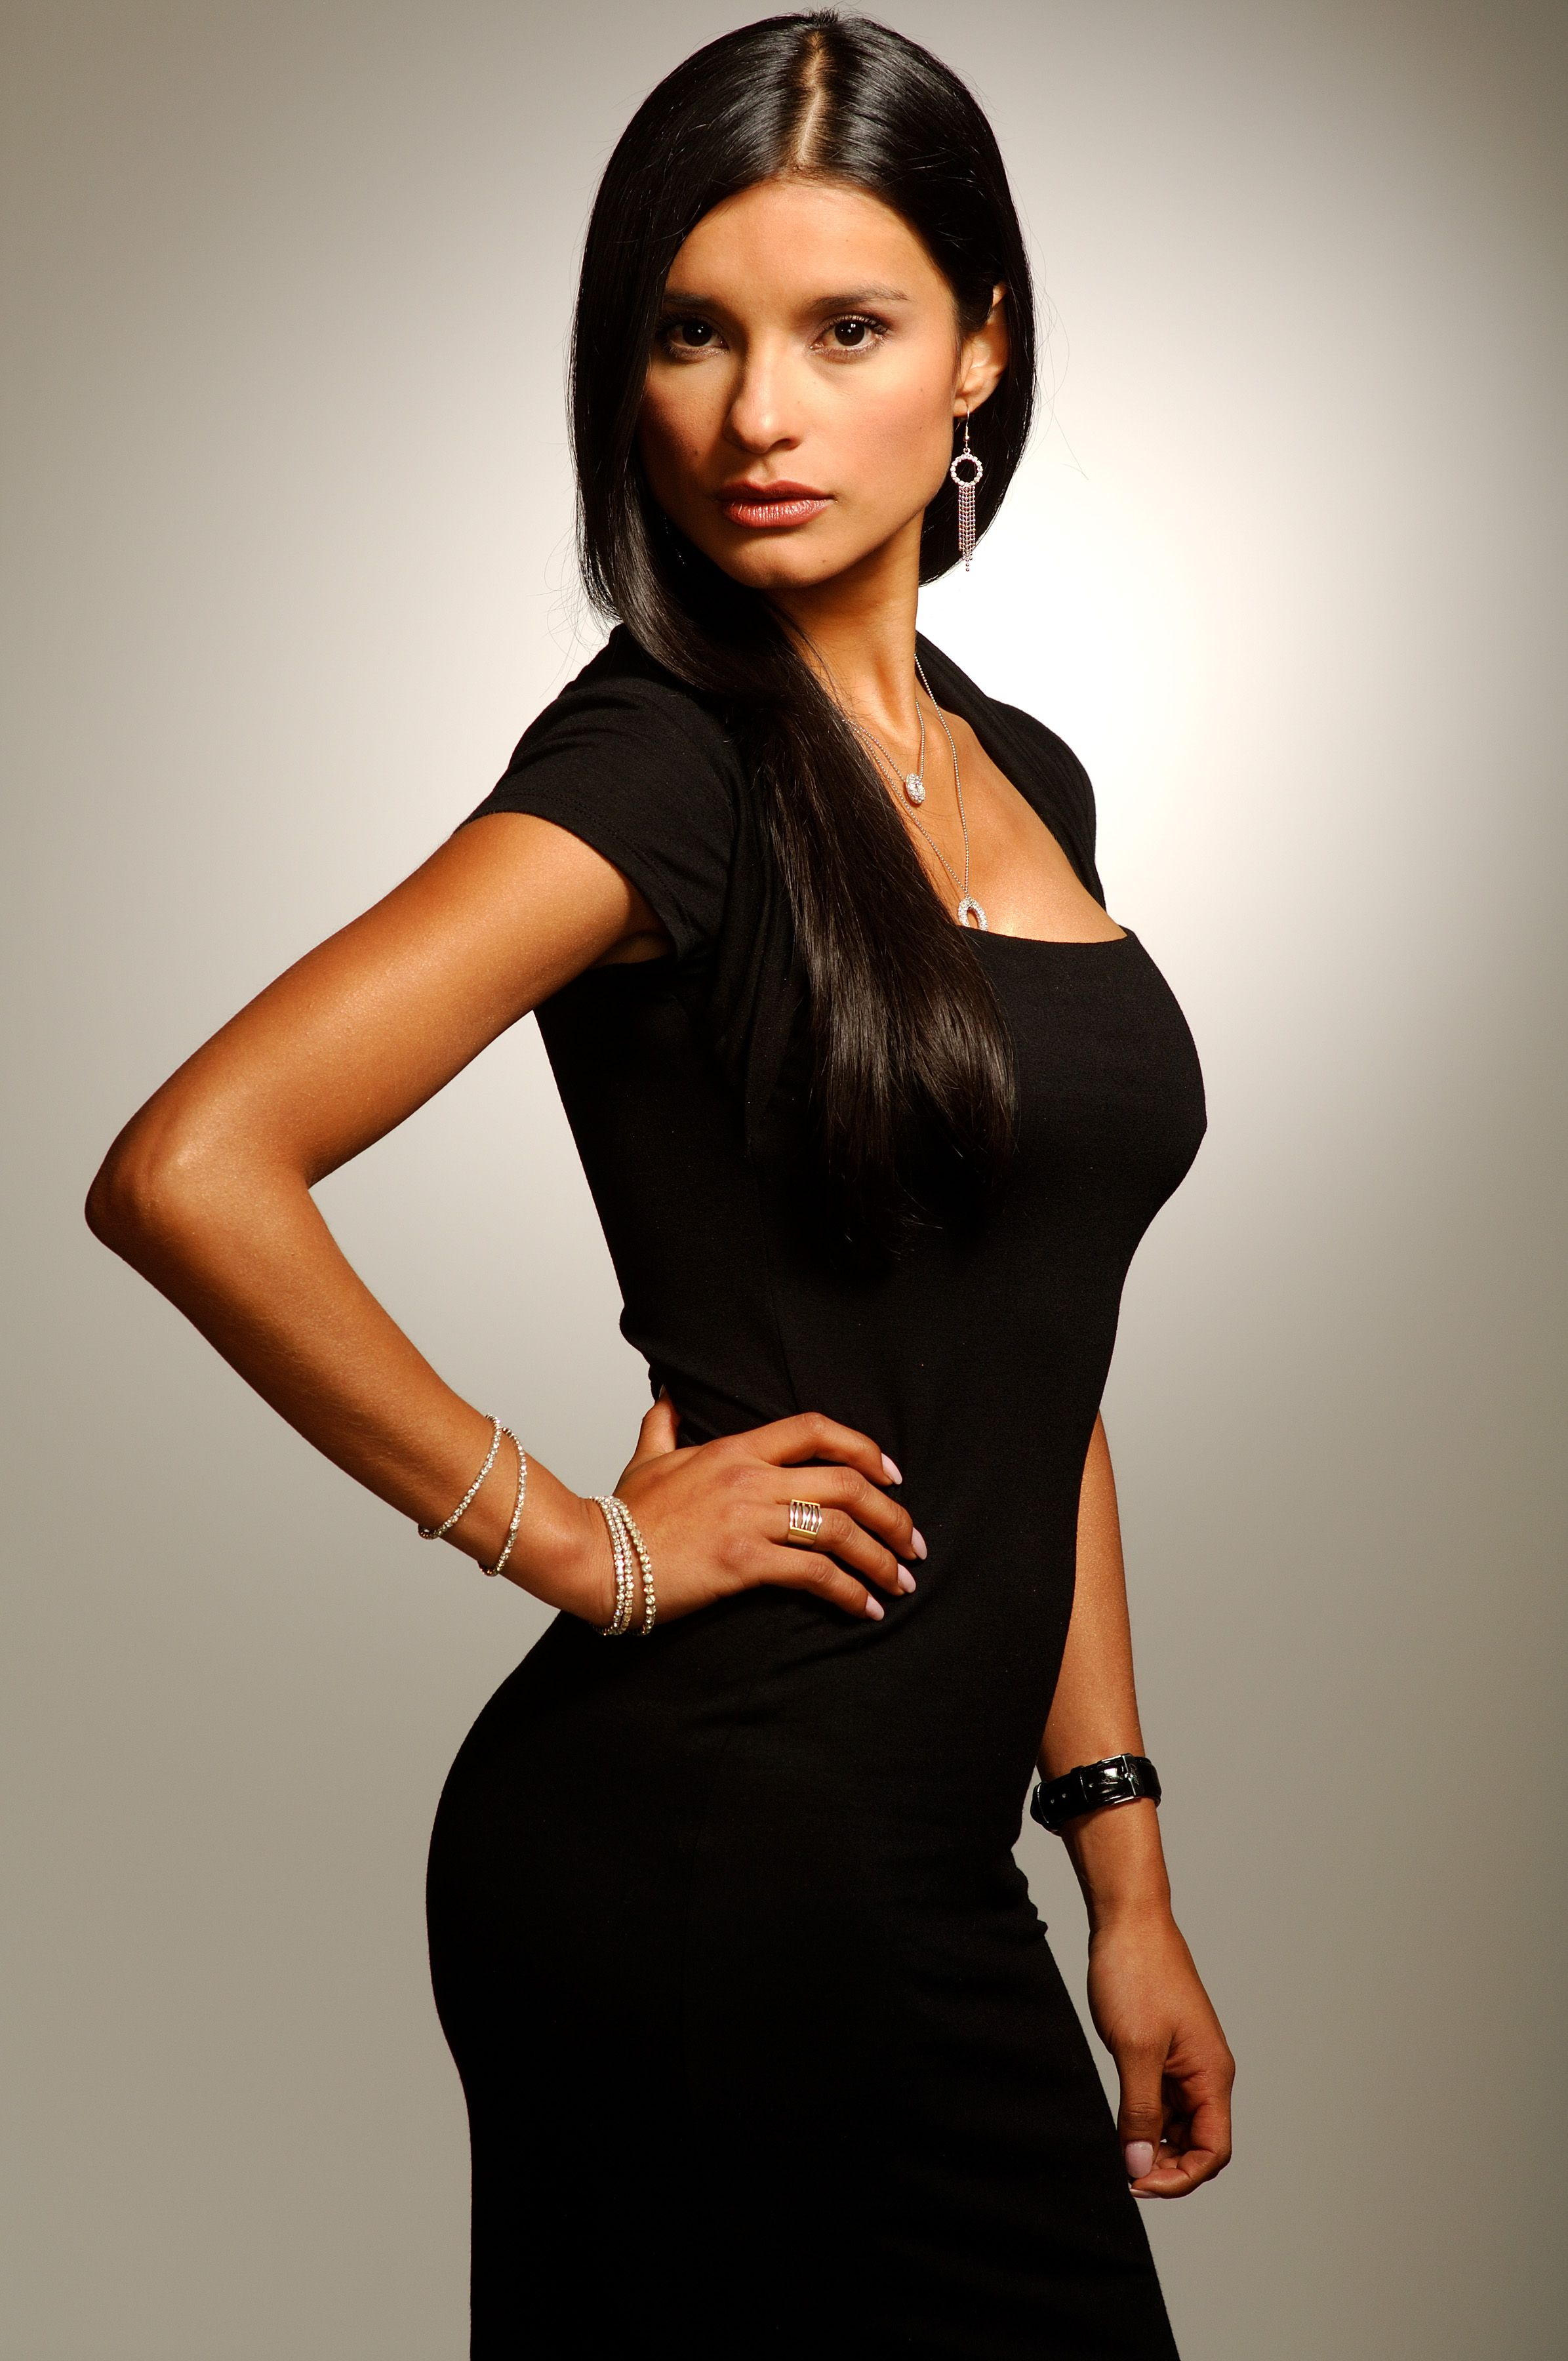 PAOLA REY COLOMBIA...stunning actress who's a big star in ...